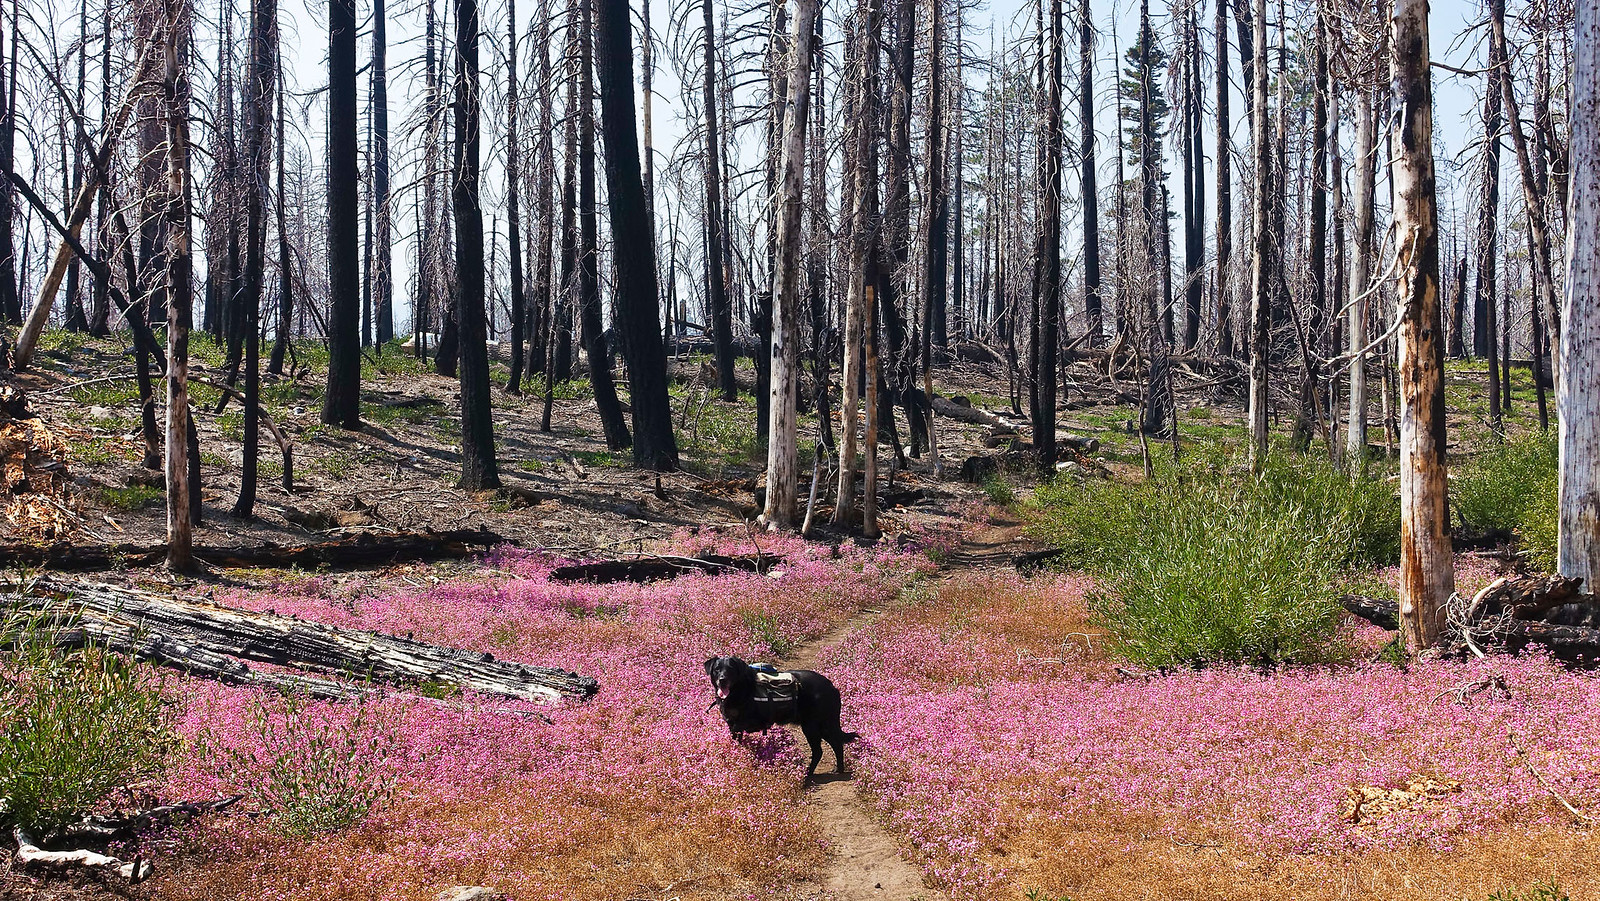 These beautiful pink wildflowers are part of the forest's renewal process.